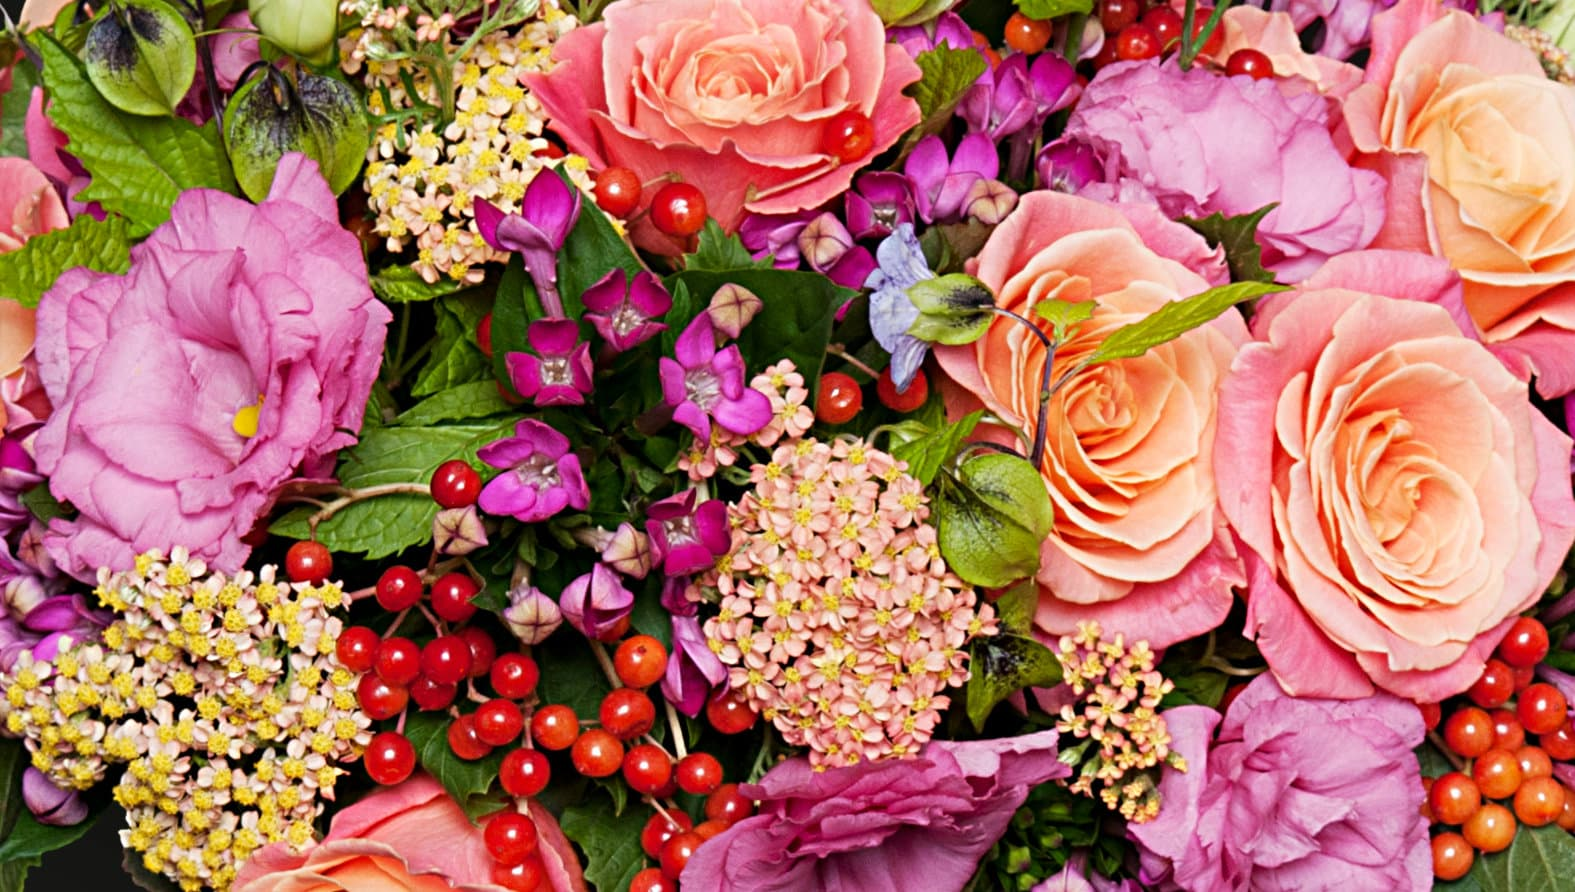 Send flowers to france flowers delivered in france from uk send flowers to france izmirmasajfo